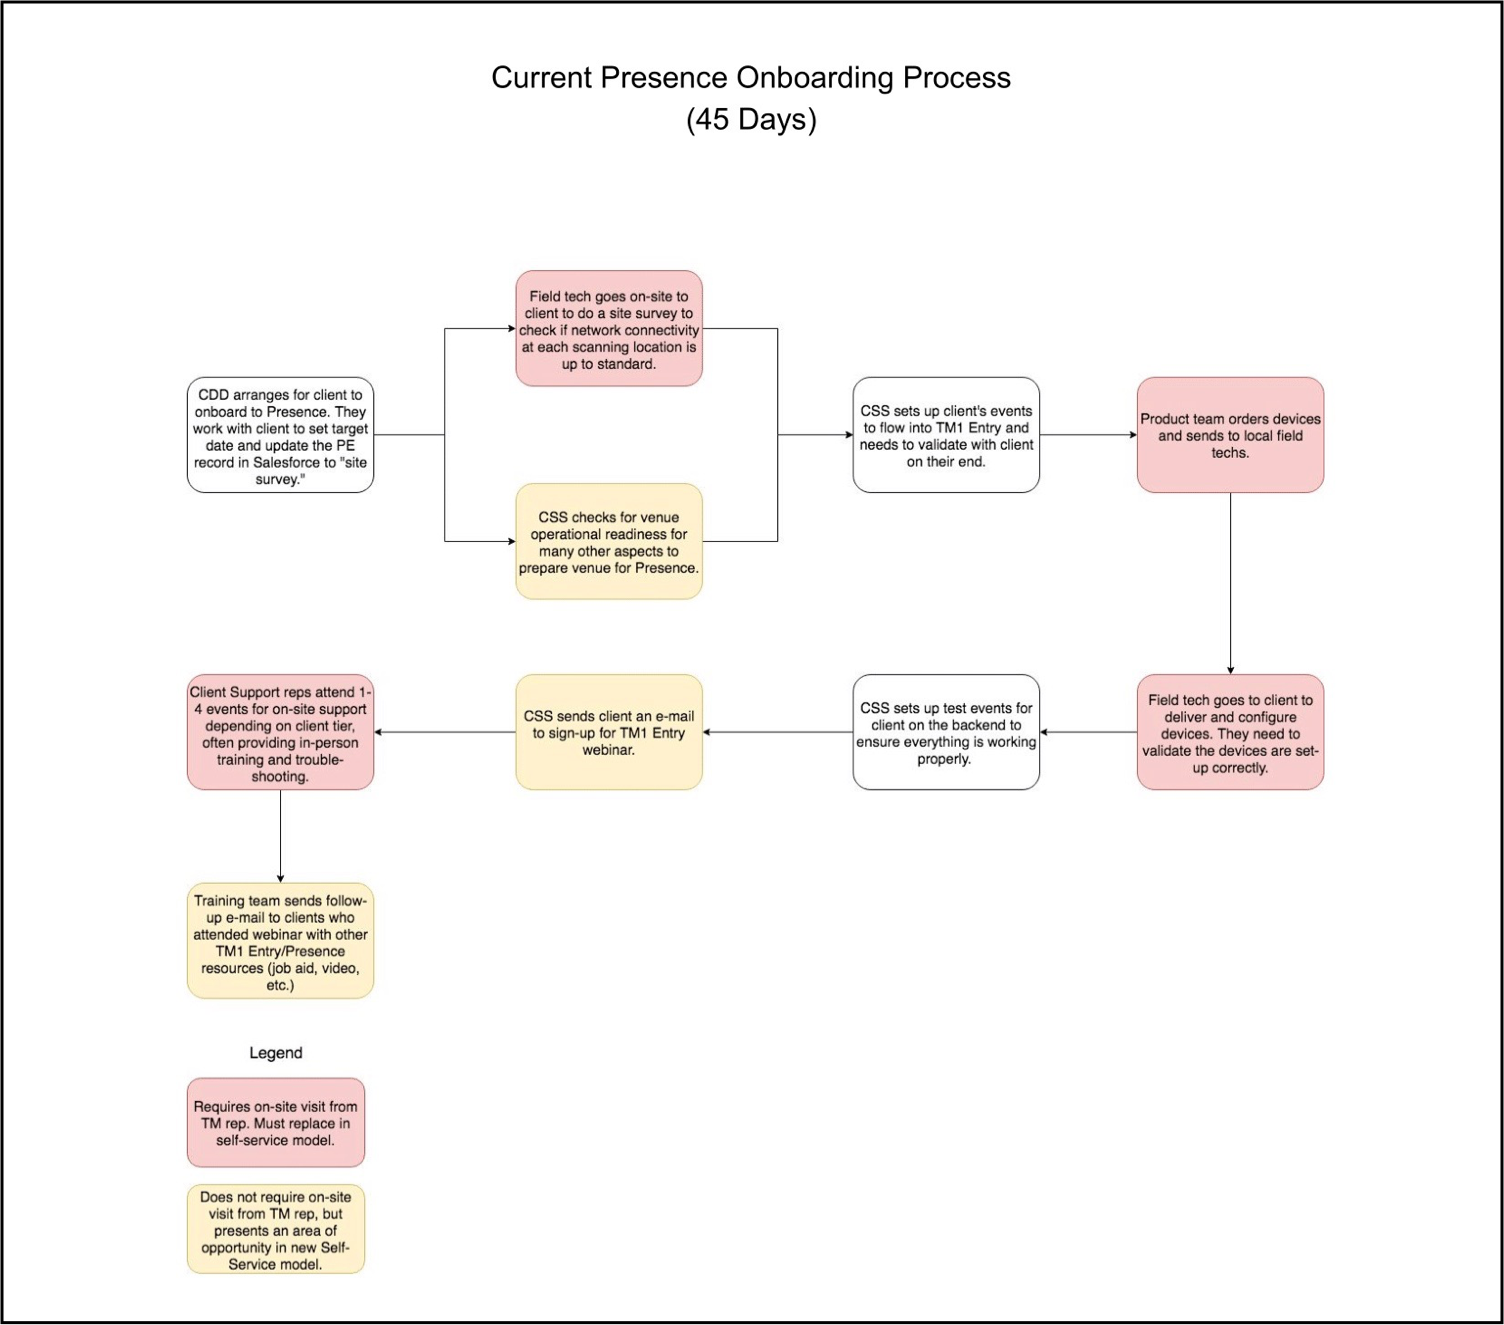 The process maps to the left are complex and dense. Most people could not make sense of them at first glance, so I simplified them a bit for wider distribution in the process map above.